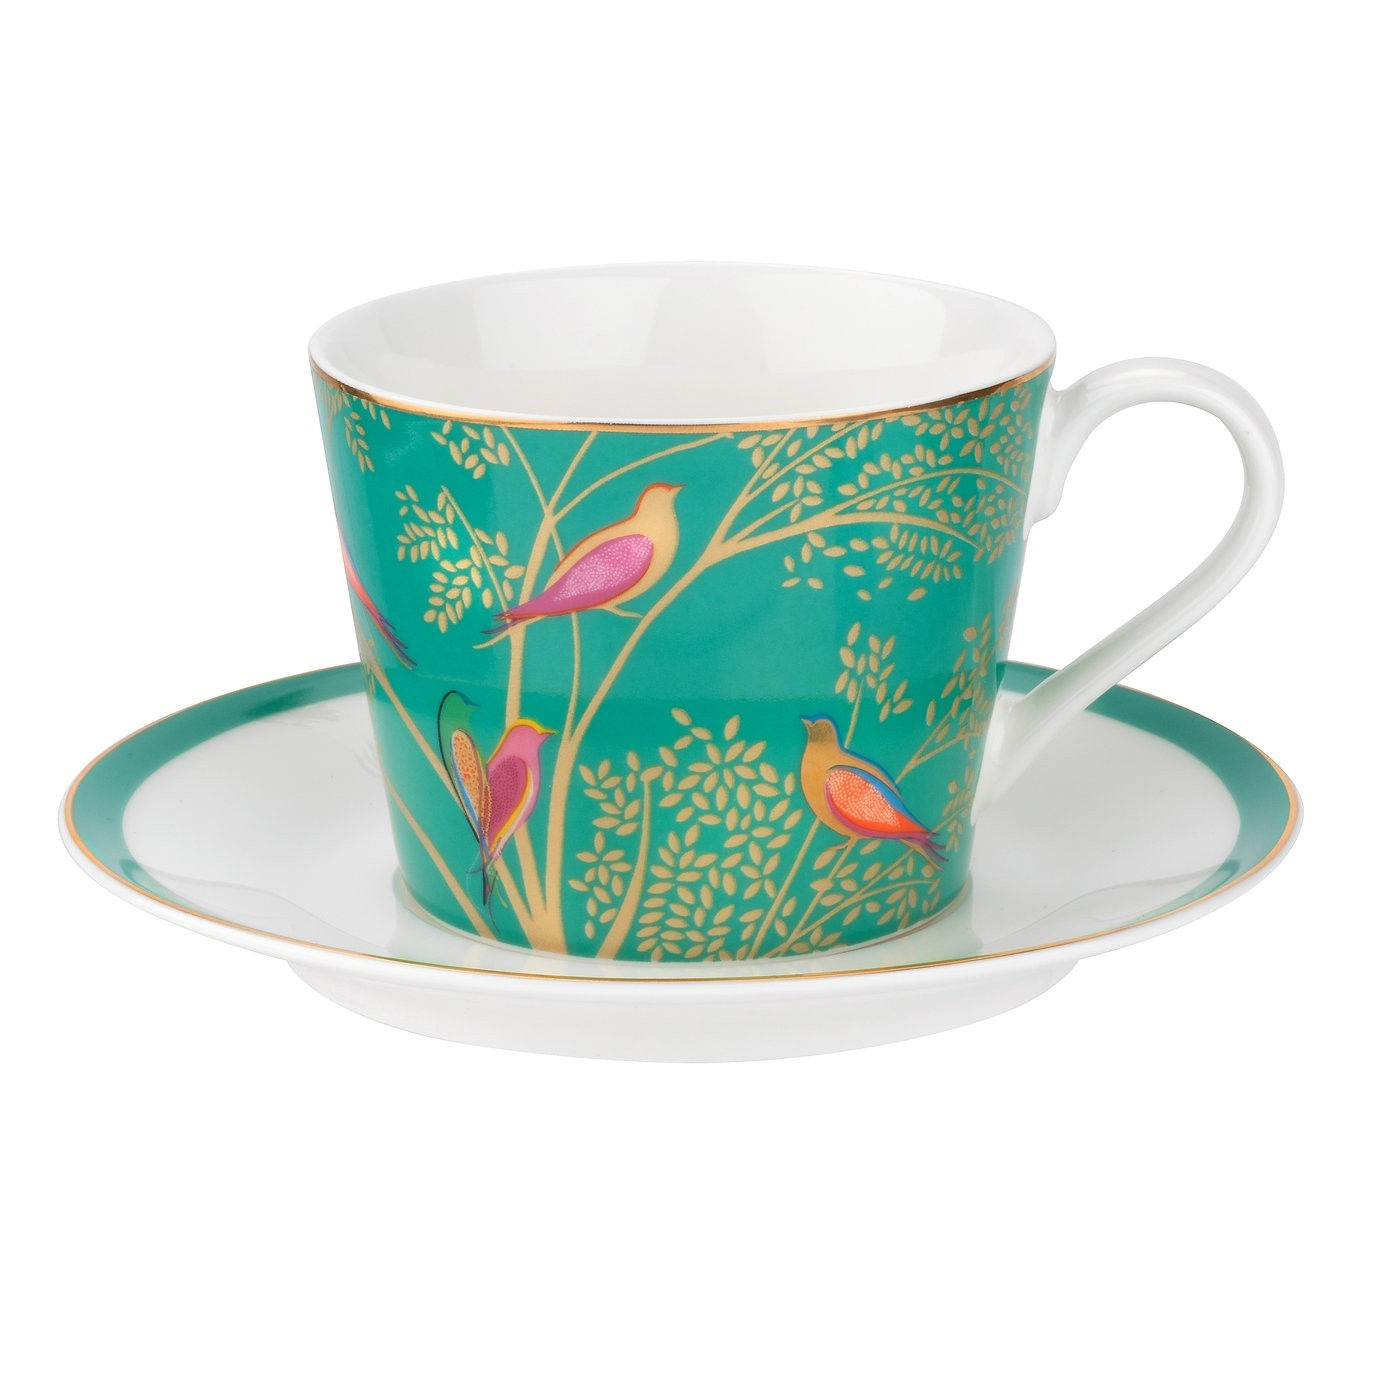 Sara Miller London for Portmeirion Chelsea Collection Teacup Saucer